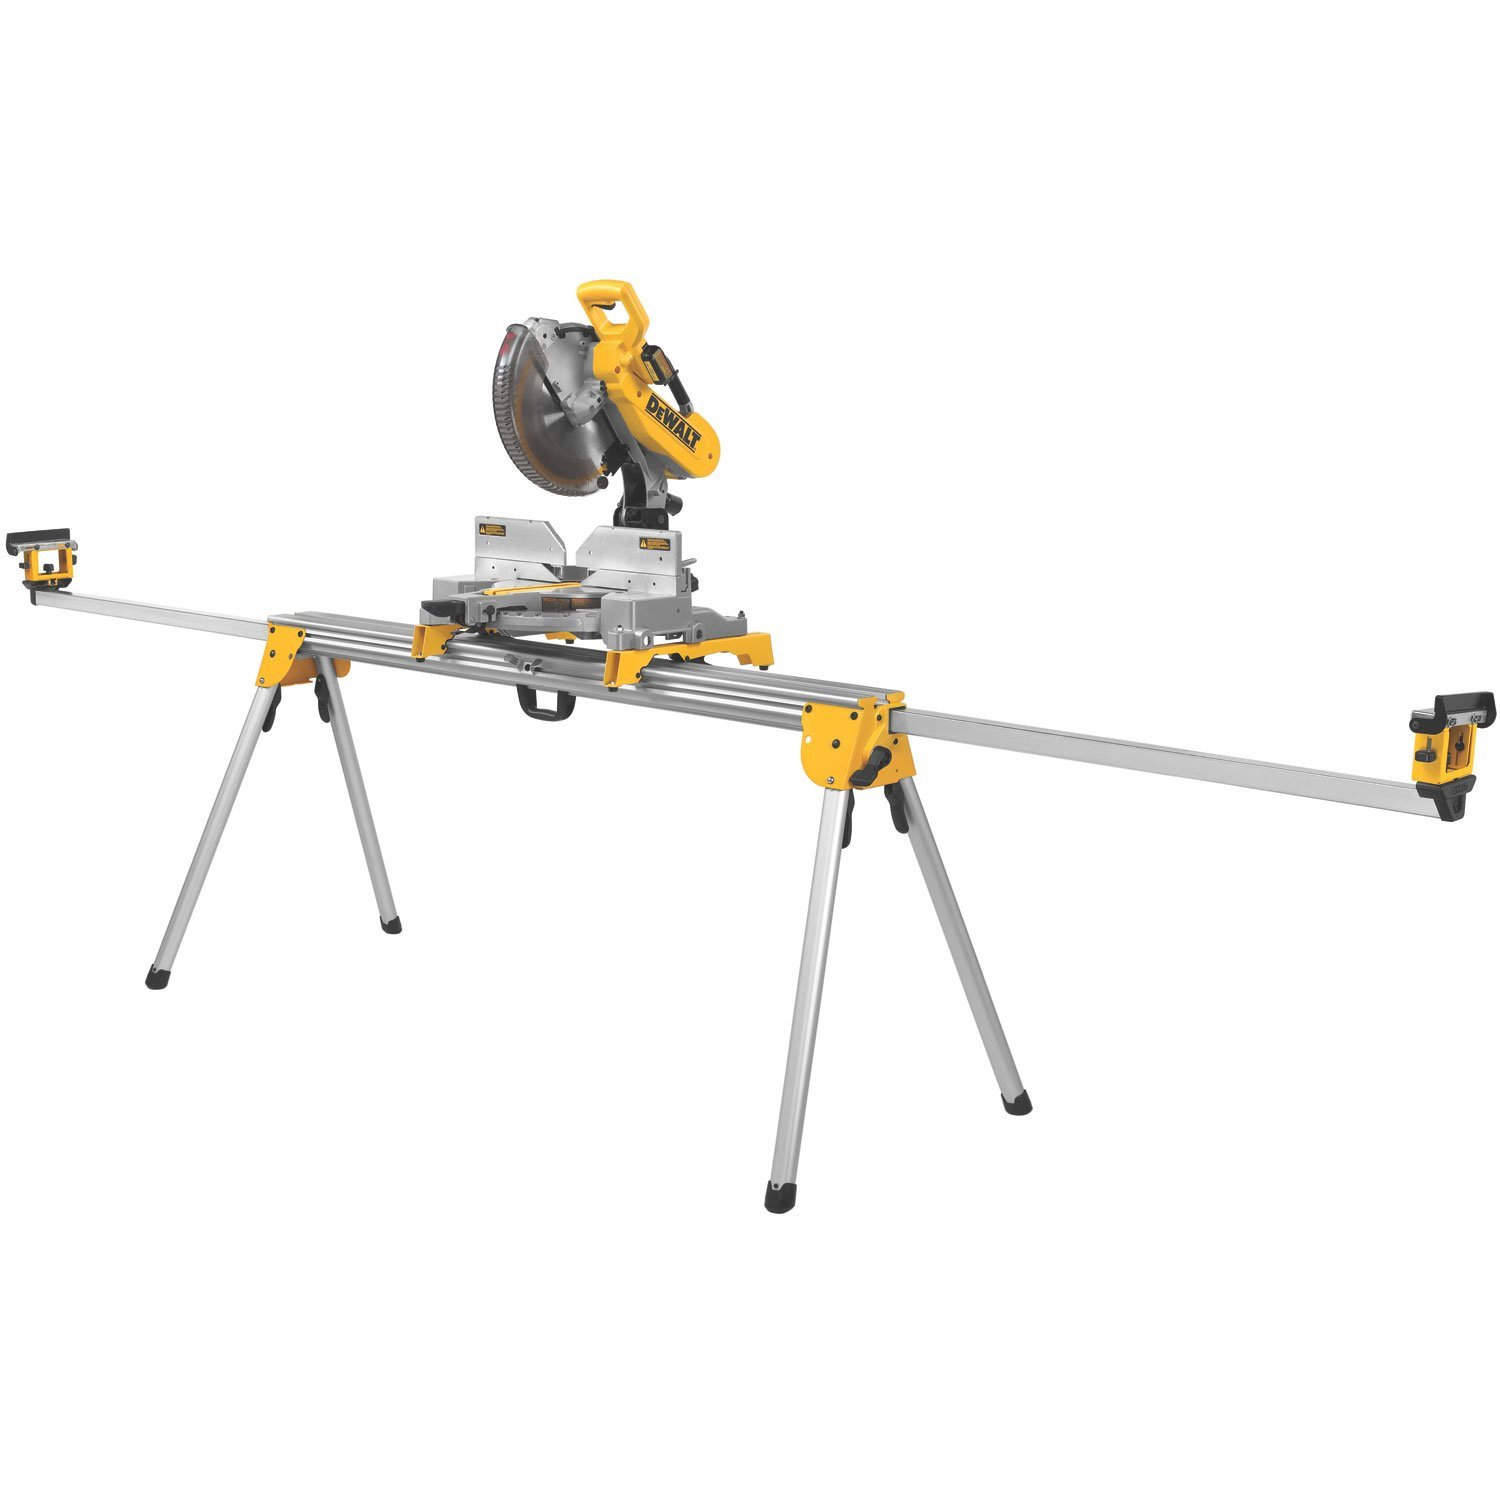 Dewalt dwx723 review miter saw stand for 12 dewalt table saw